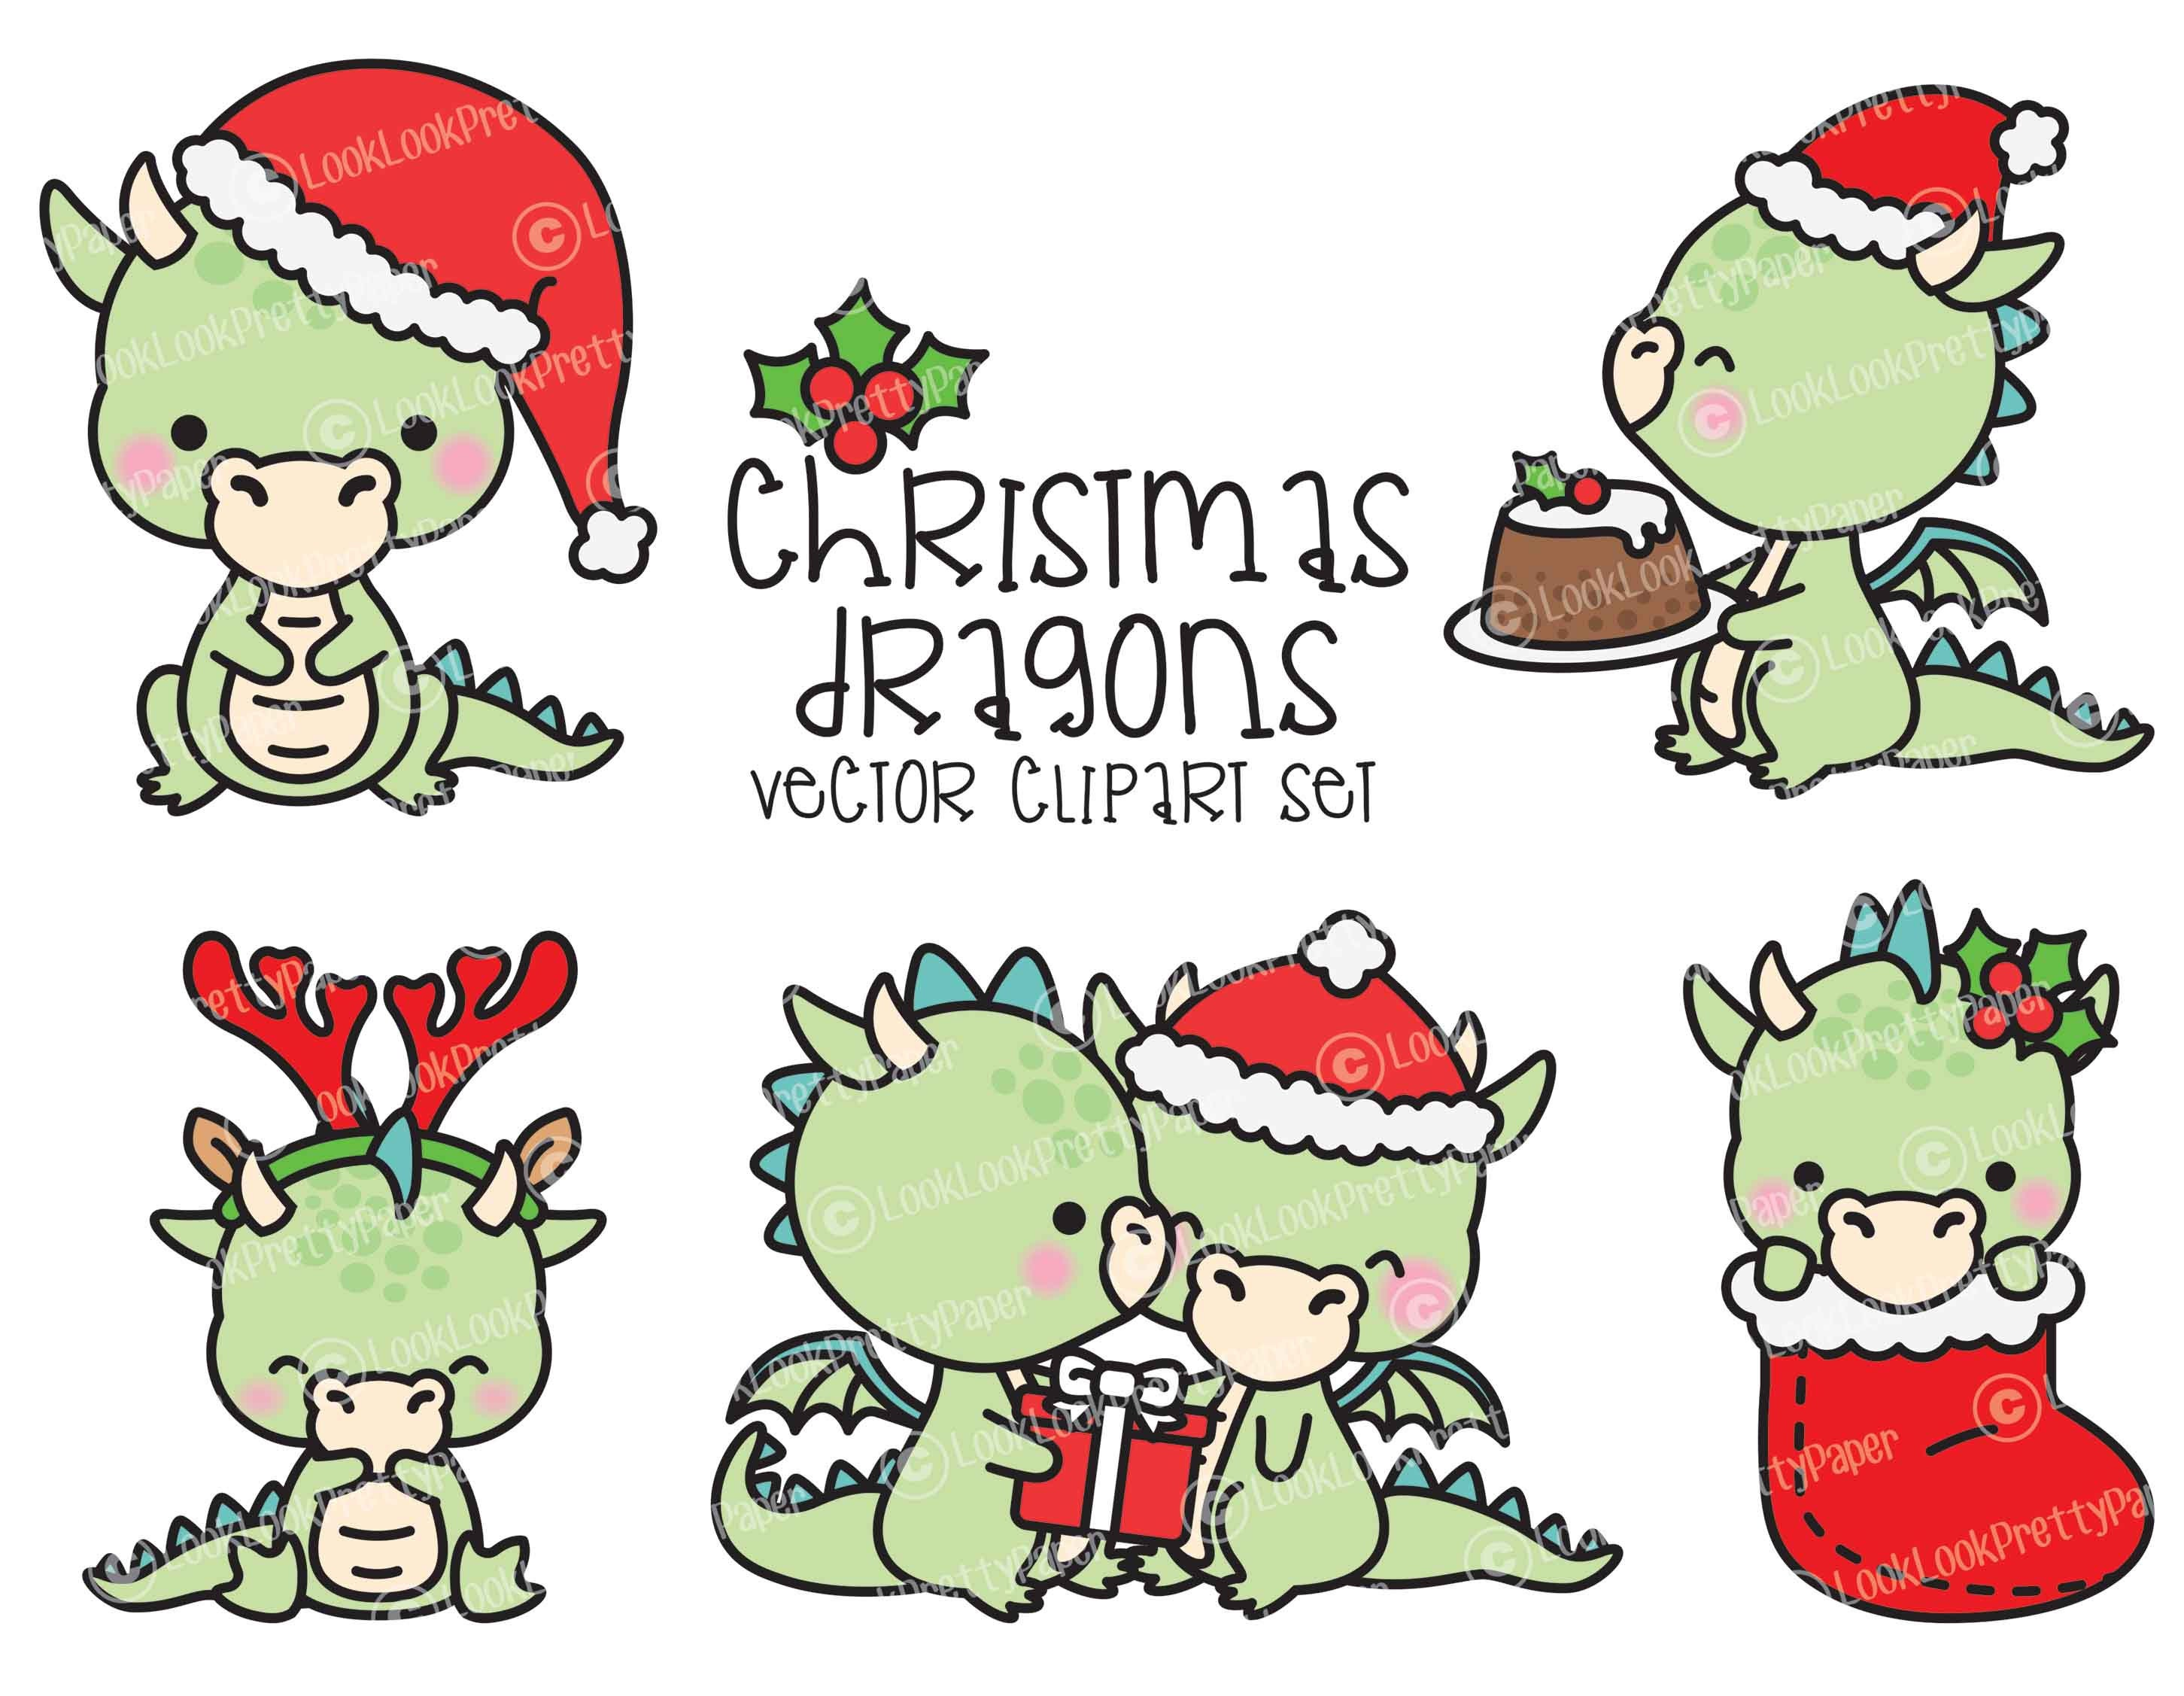 Premium Vector Clipart Kawaii Christmas Dragons Cute